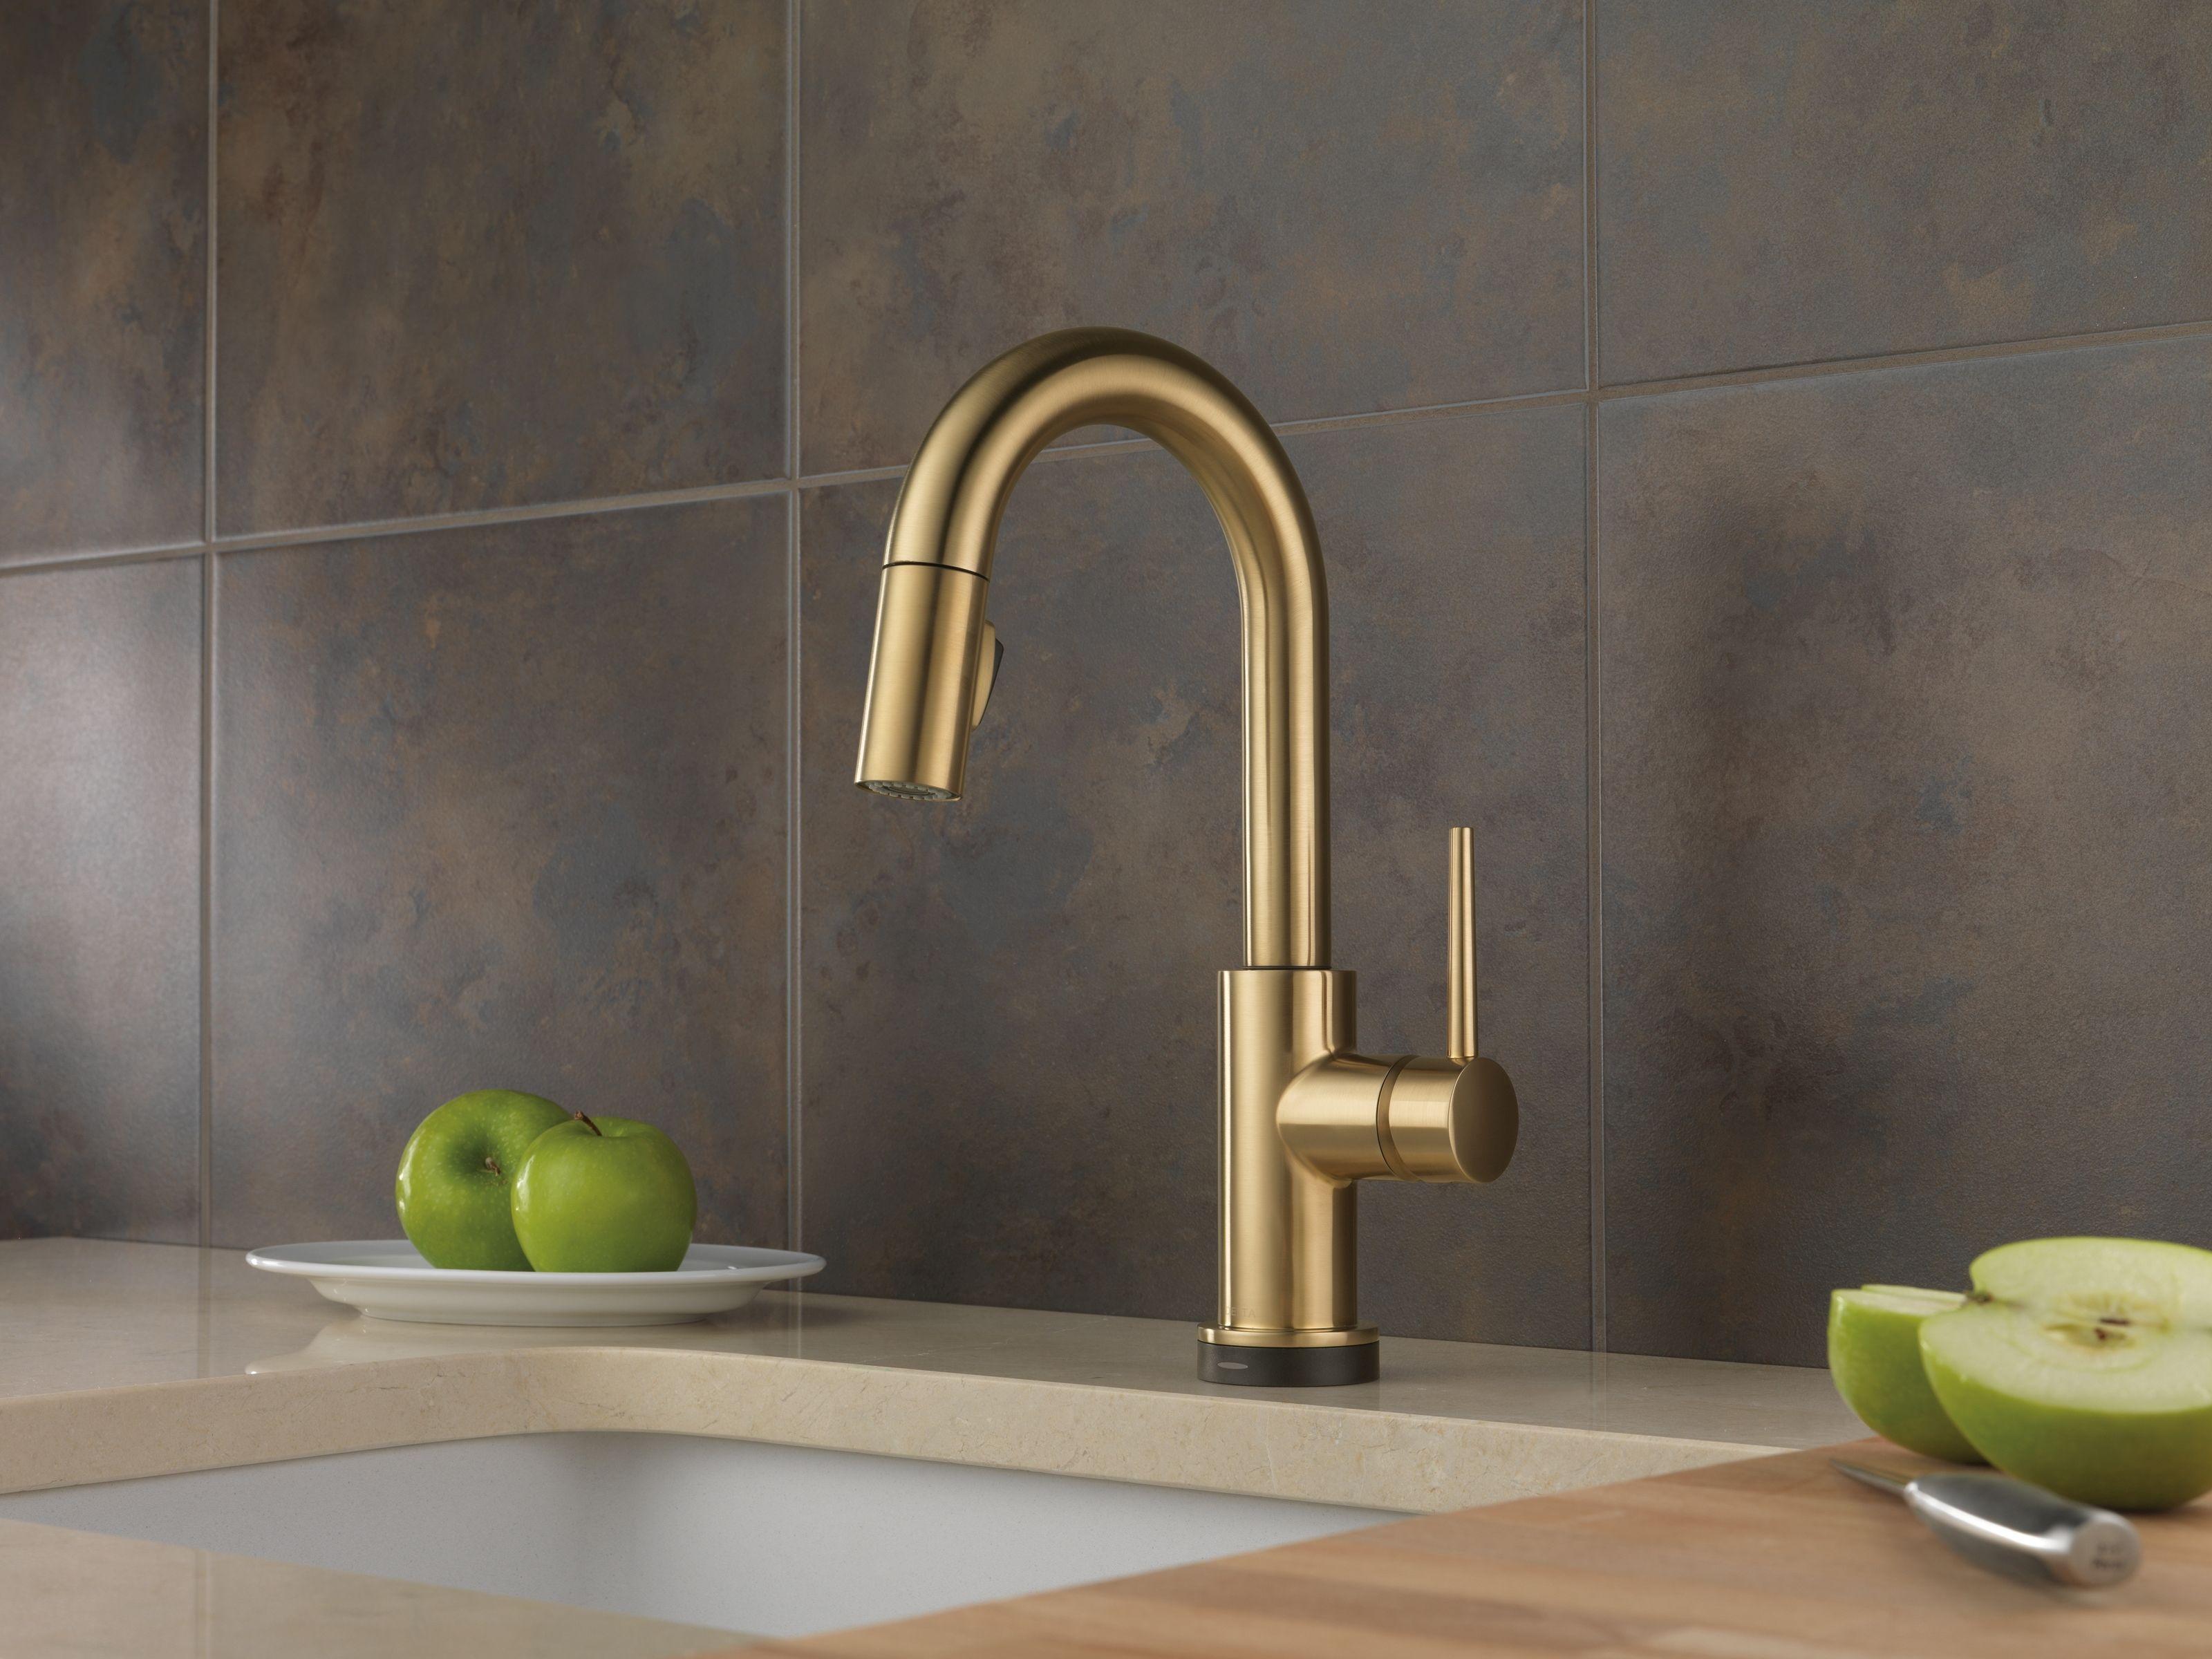 pdx diamond wayfair bronze assembly with and drain widespread improvement seal home kitchen technology dryden delta reviews faucets faucet champagne bathroom